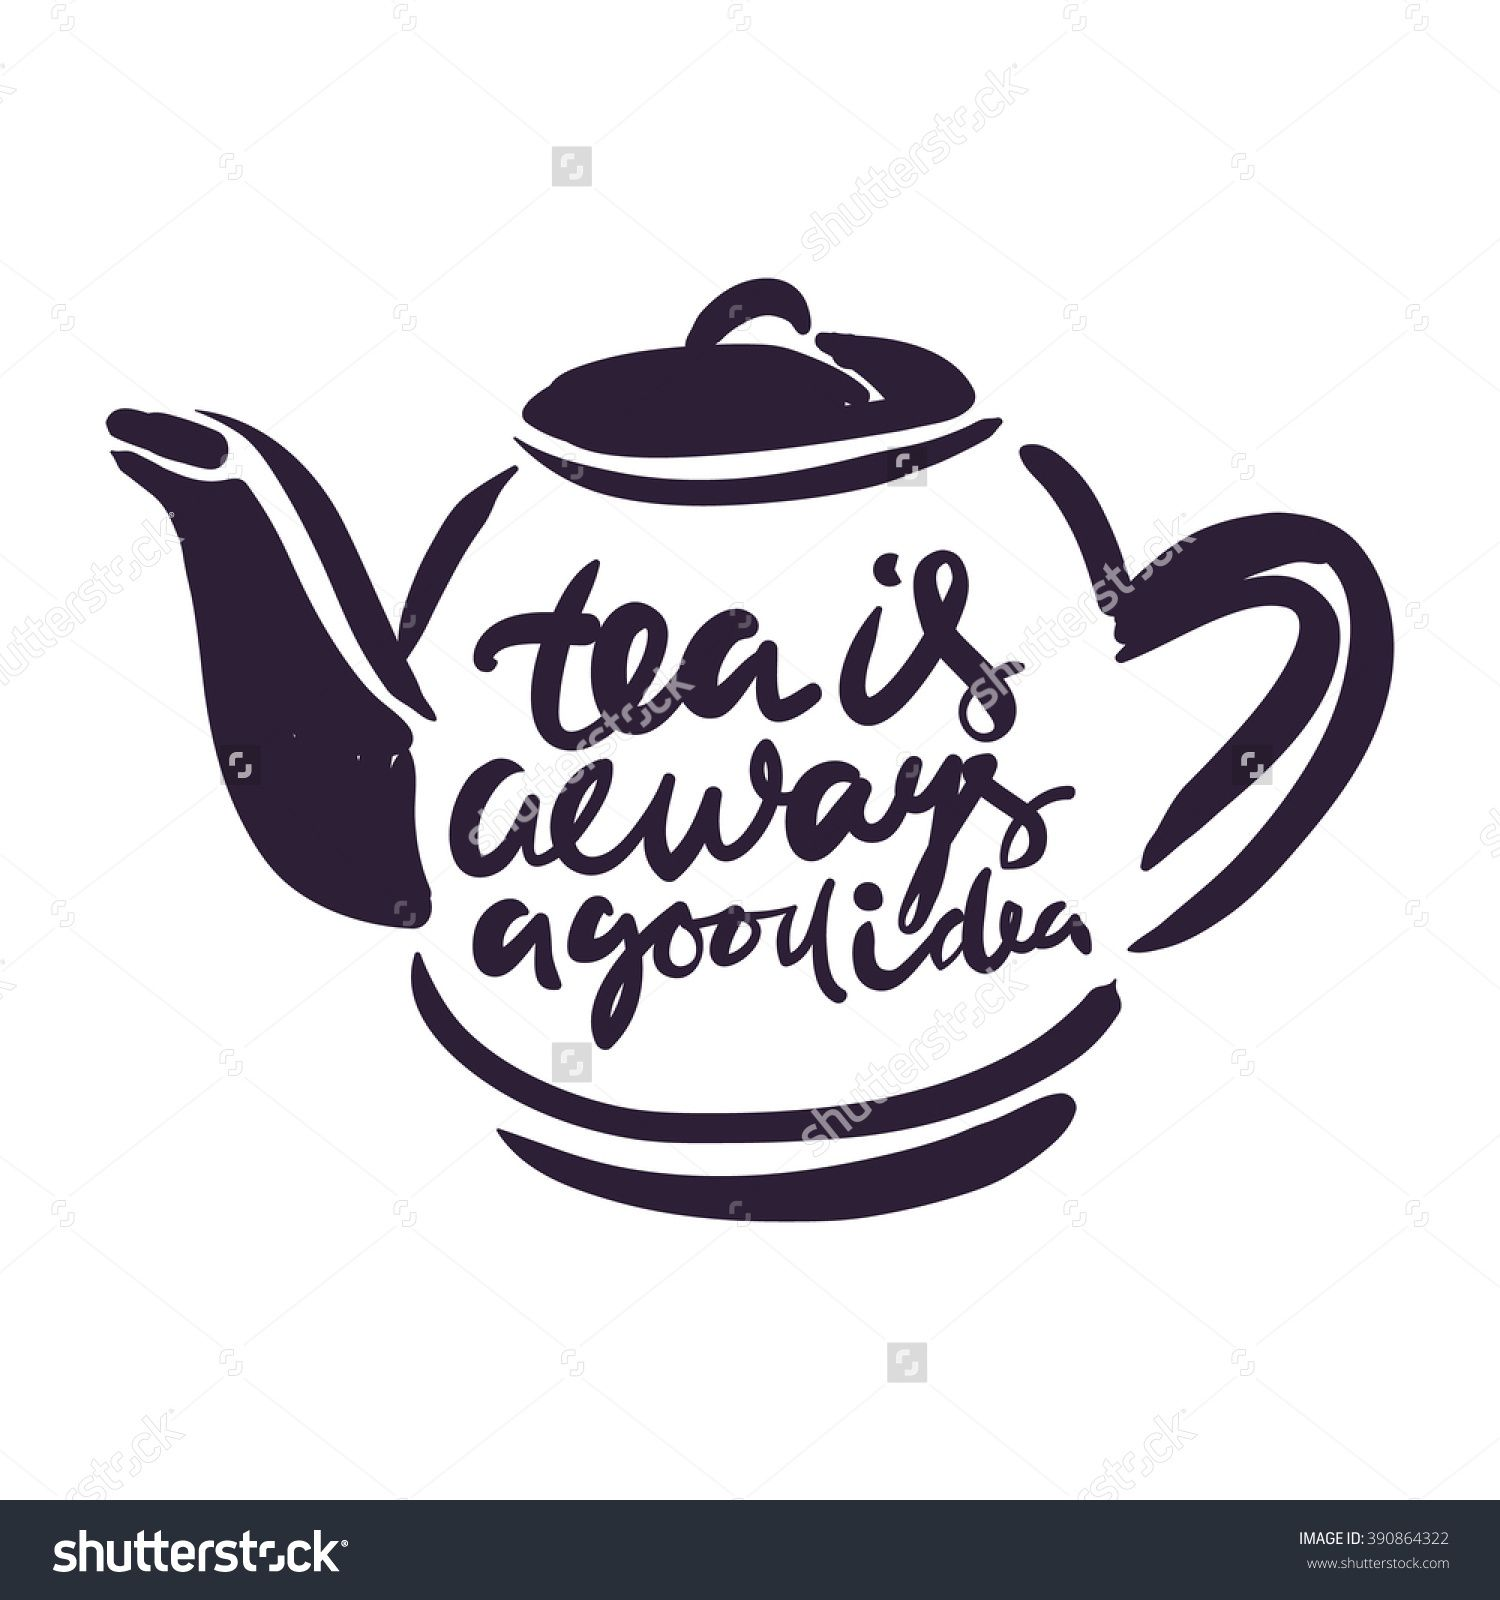 Tea Is Always A Good Idea Hand Lettering And Custom Typography For Your Designs T Shirts Bags For Posters Hand Lettering Typography Hand Drawn Lettering Hd wallpaper tea cup kettle hands